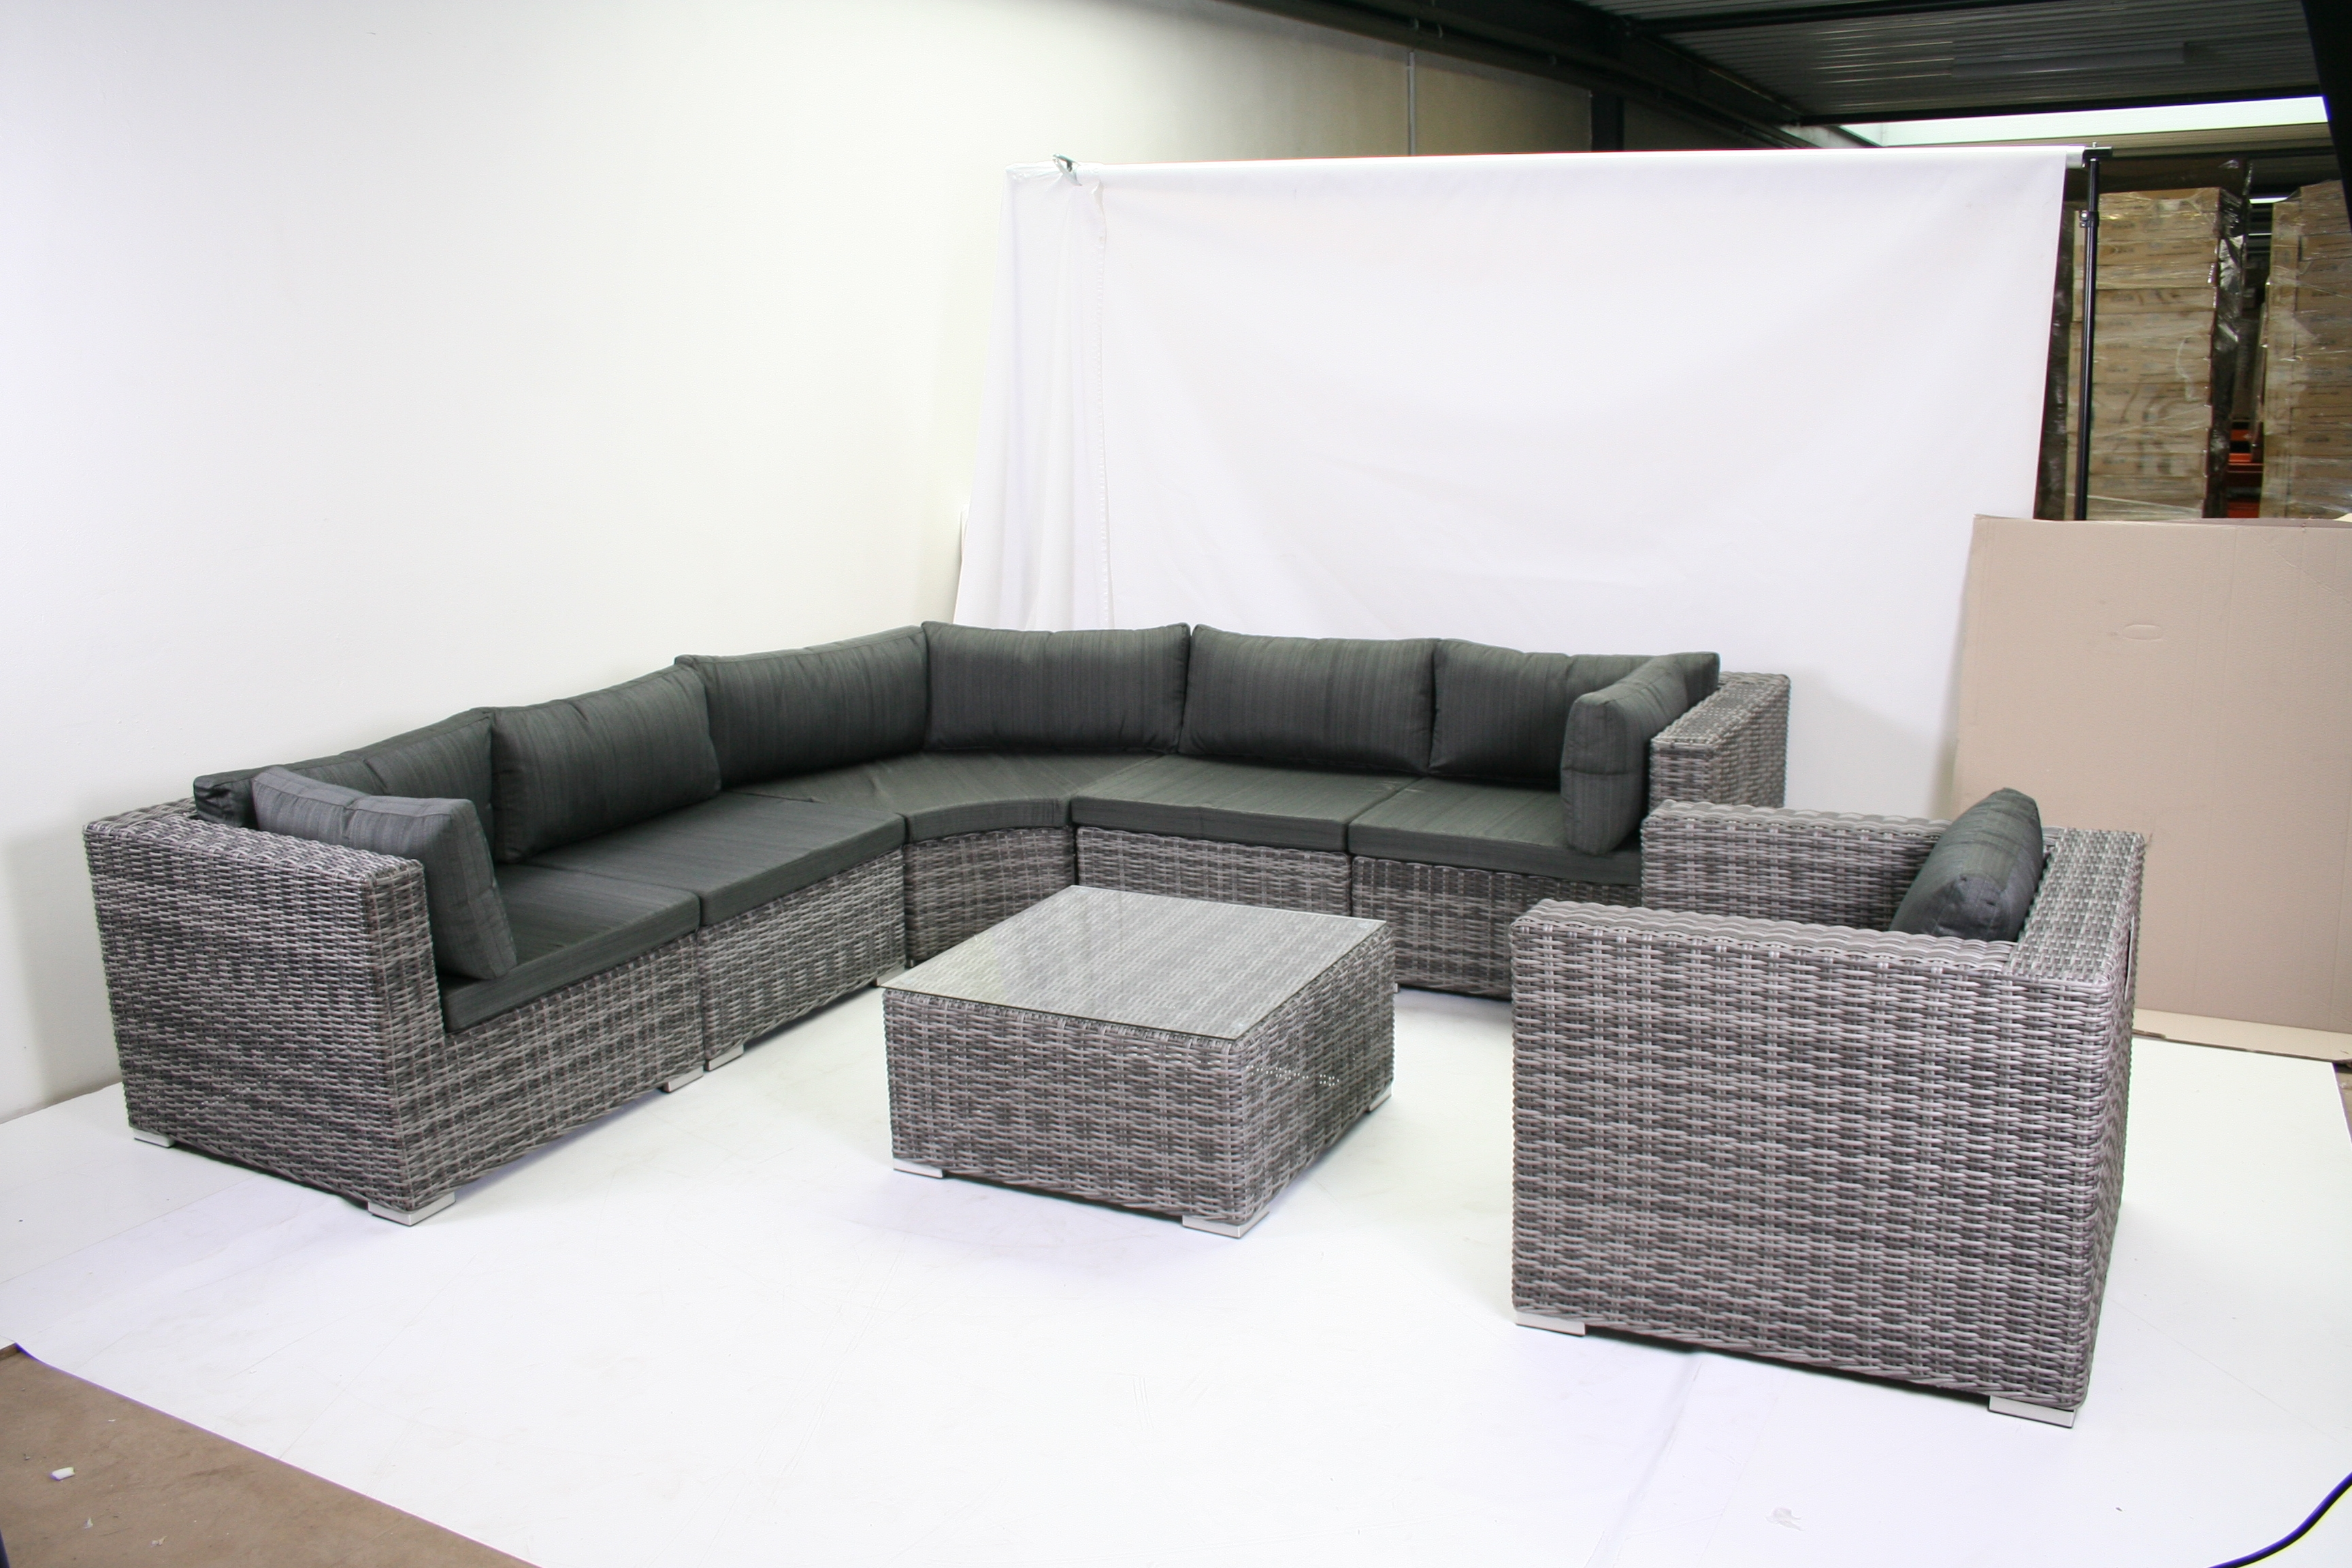 Loungeset Madrid Tuin Decoratie Tot 100 Euro Loungesets